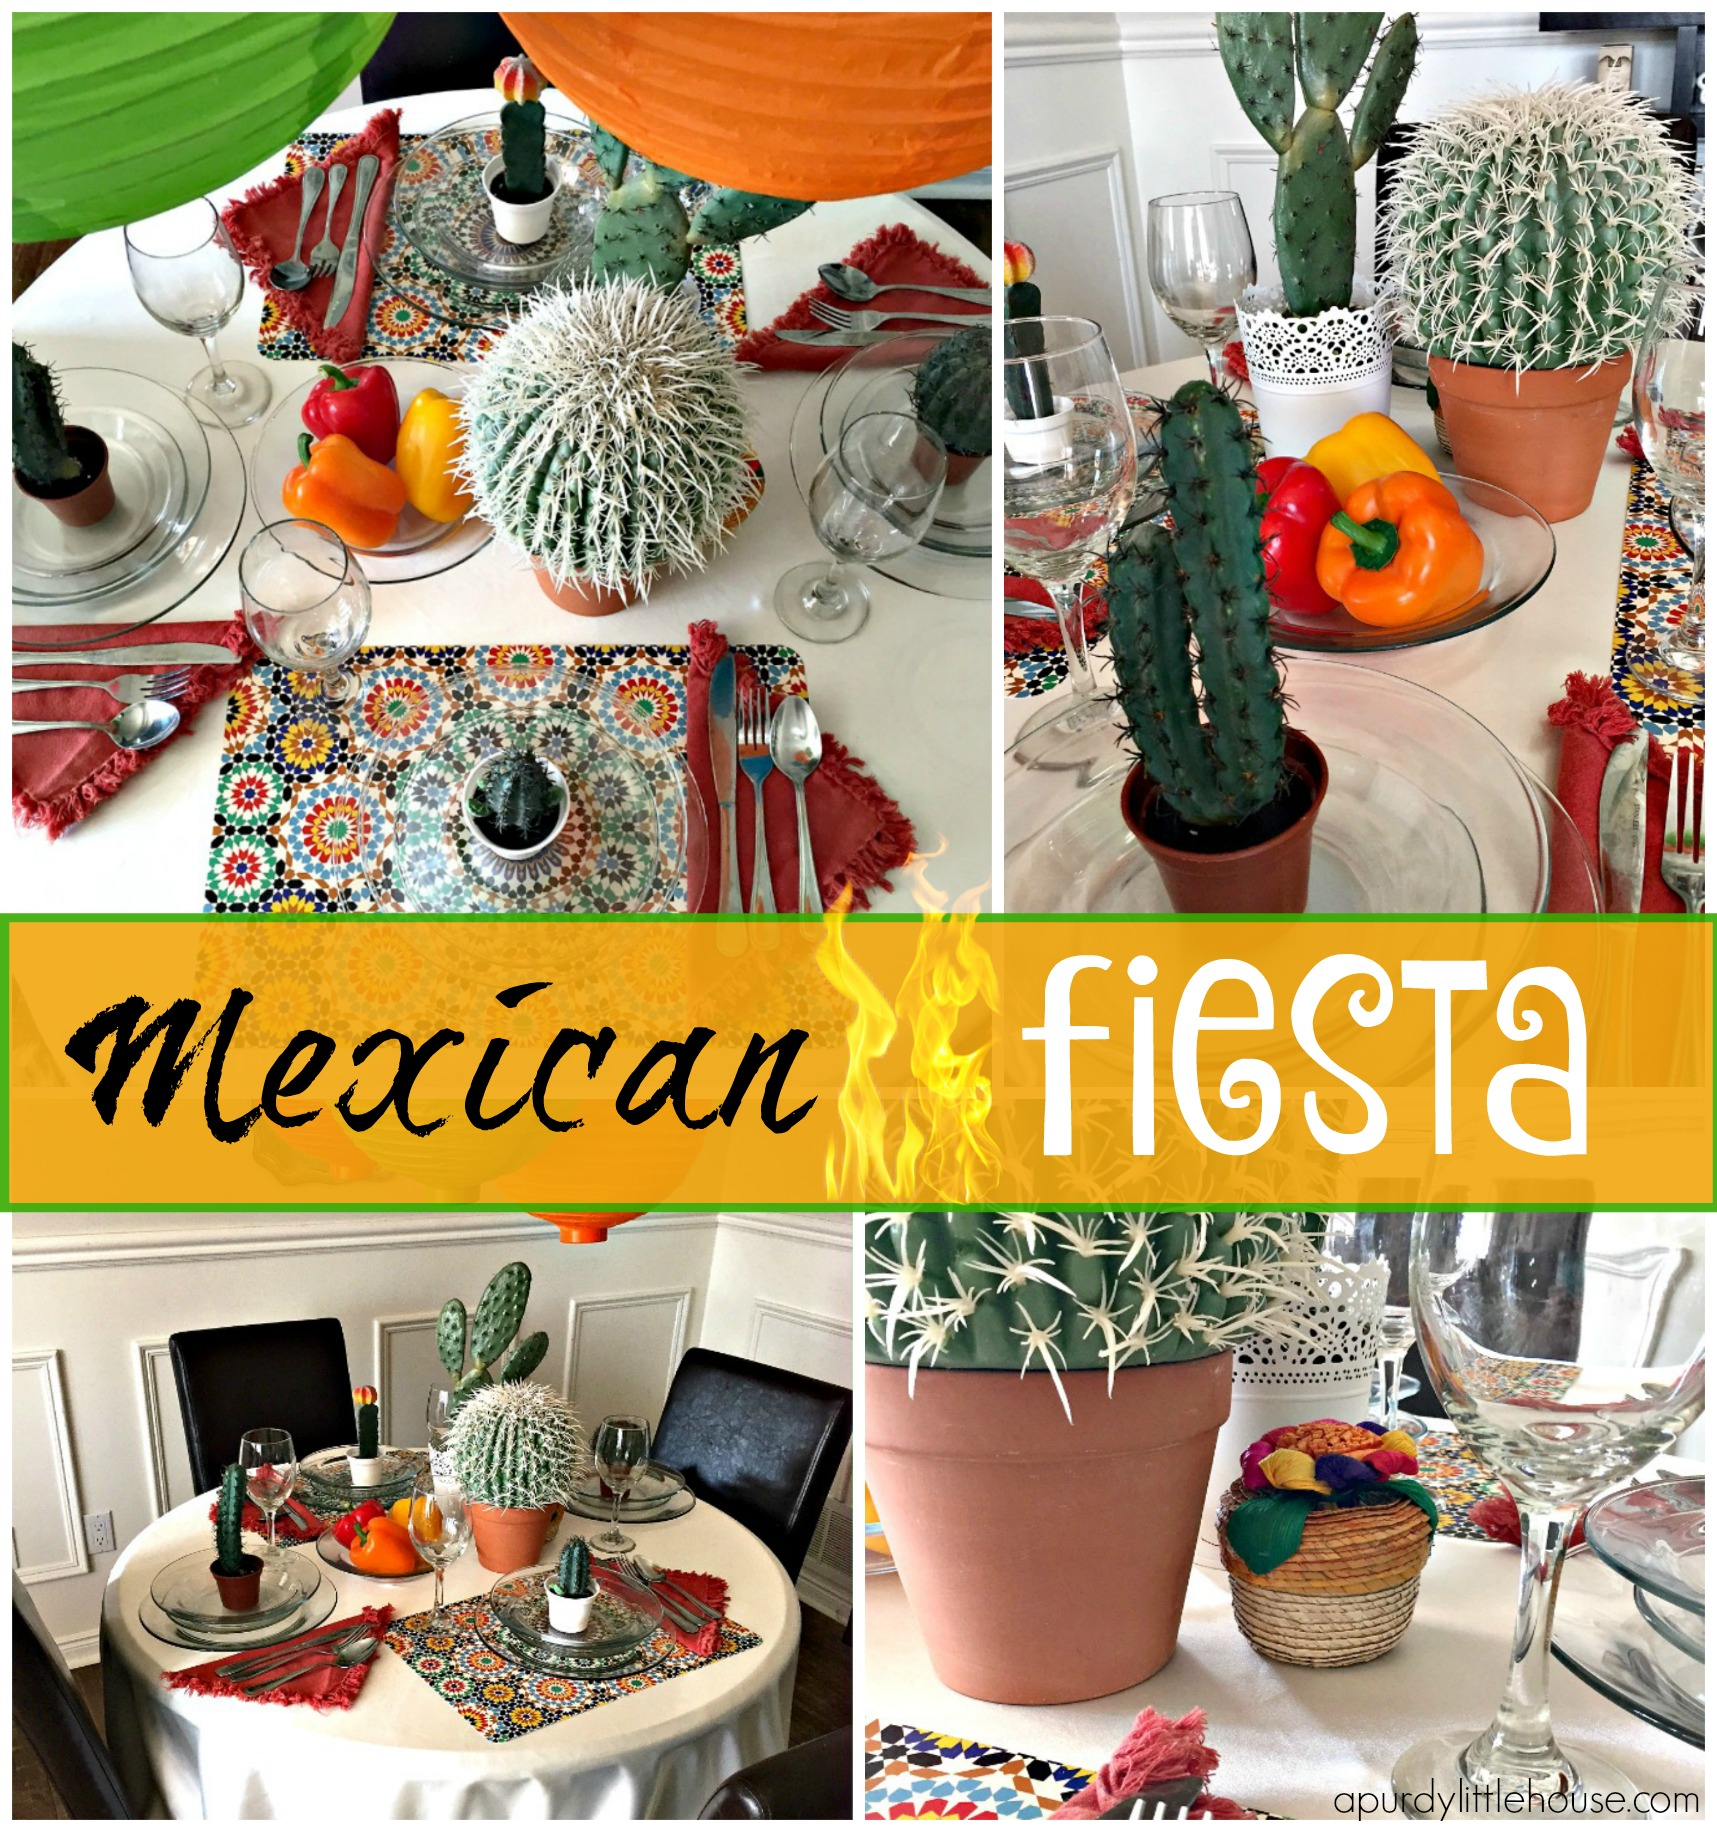 Mexican FiestaTable Setting for a Mexican themed dinner Mexican food table setting apurdylittlehouse.com  sc 1 st  A Purdy Little House : mexican table setting - pezcame.com